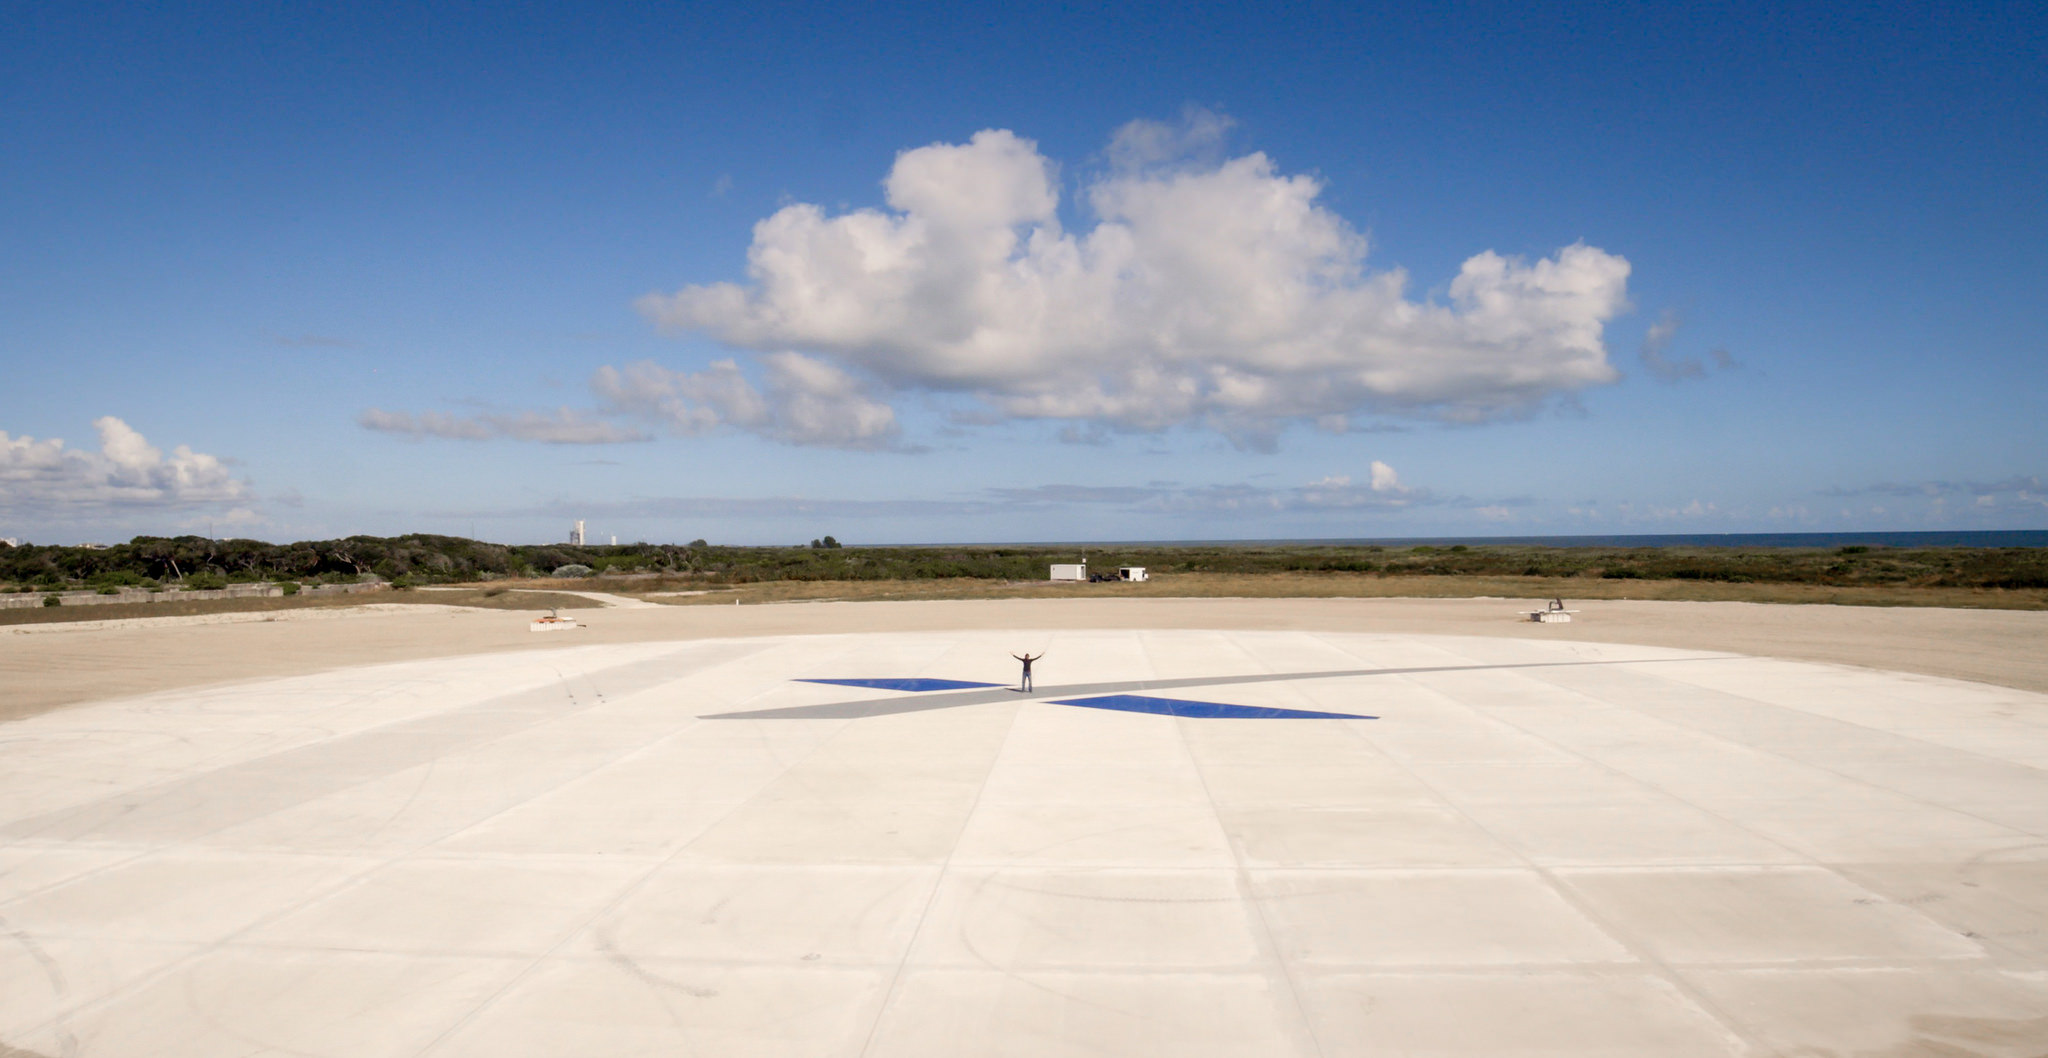 Landing Zone 1 for Falcon 9   Credit: SpaceX